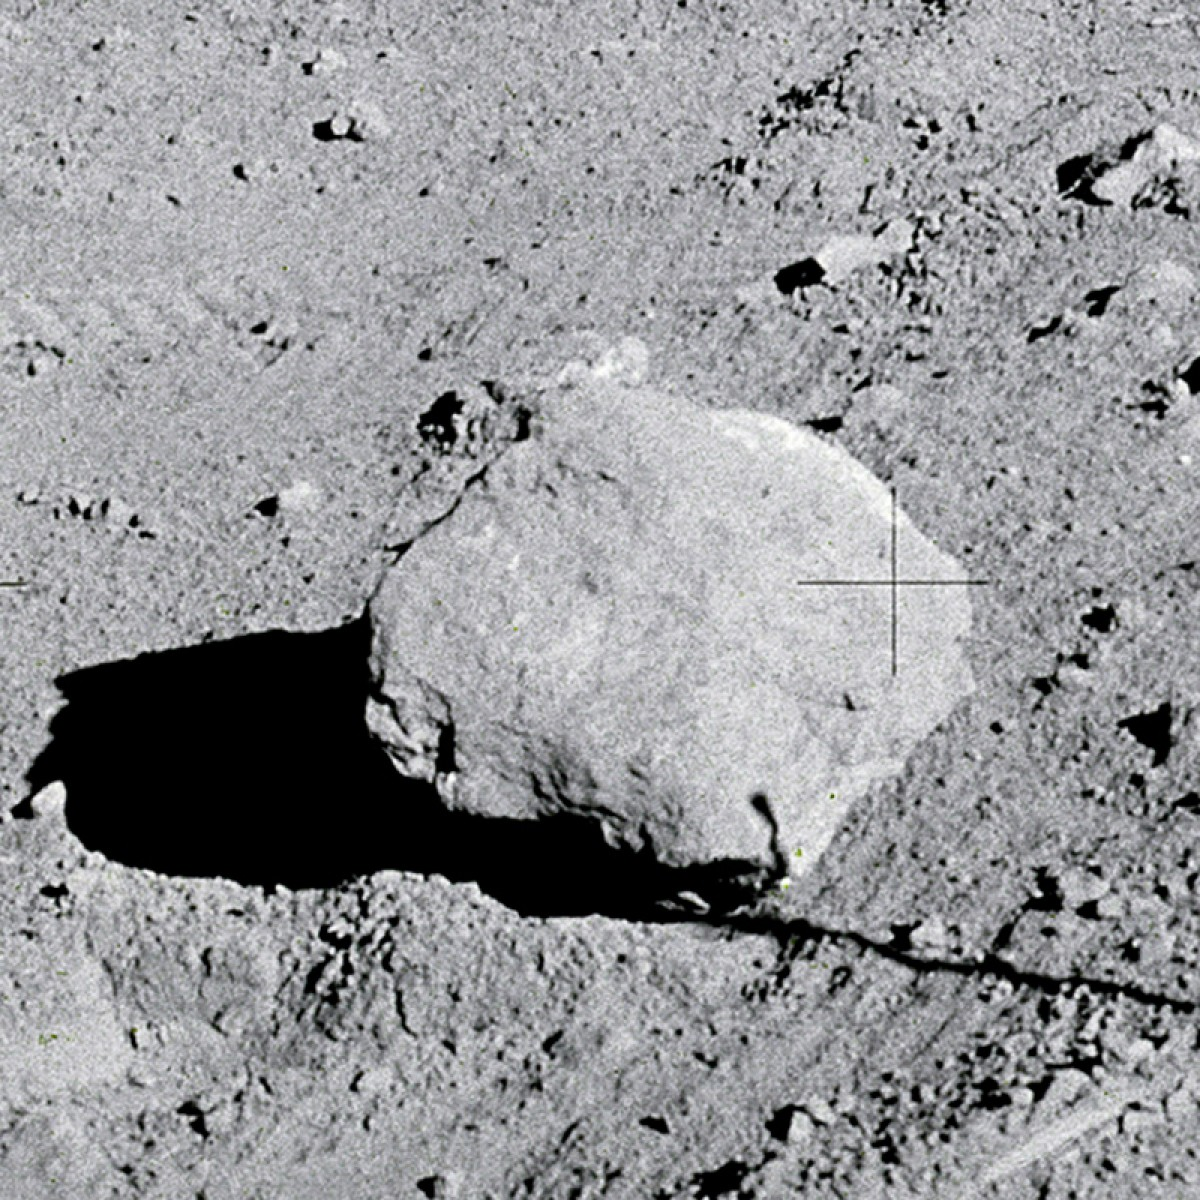 How Do We Know The Moon Landing Really Happened? - The